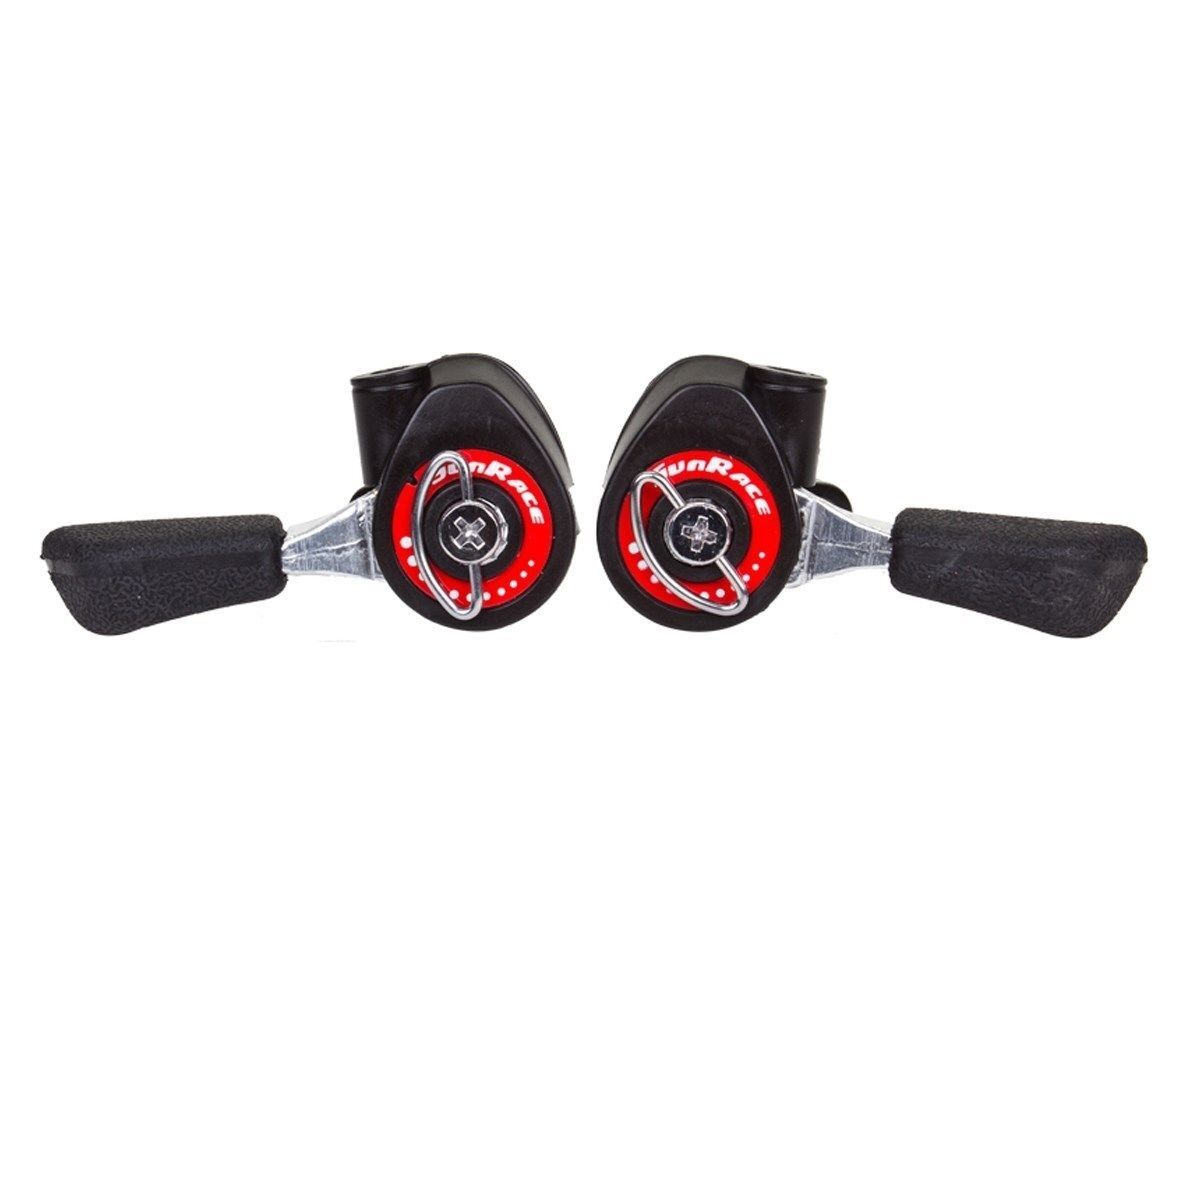 SunRace SLM10 Friction Shifters-5 7 Speed-22.2 mm Handlebar Clamp-Pair-New 6